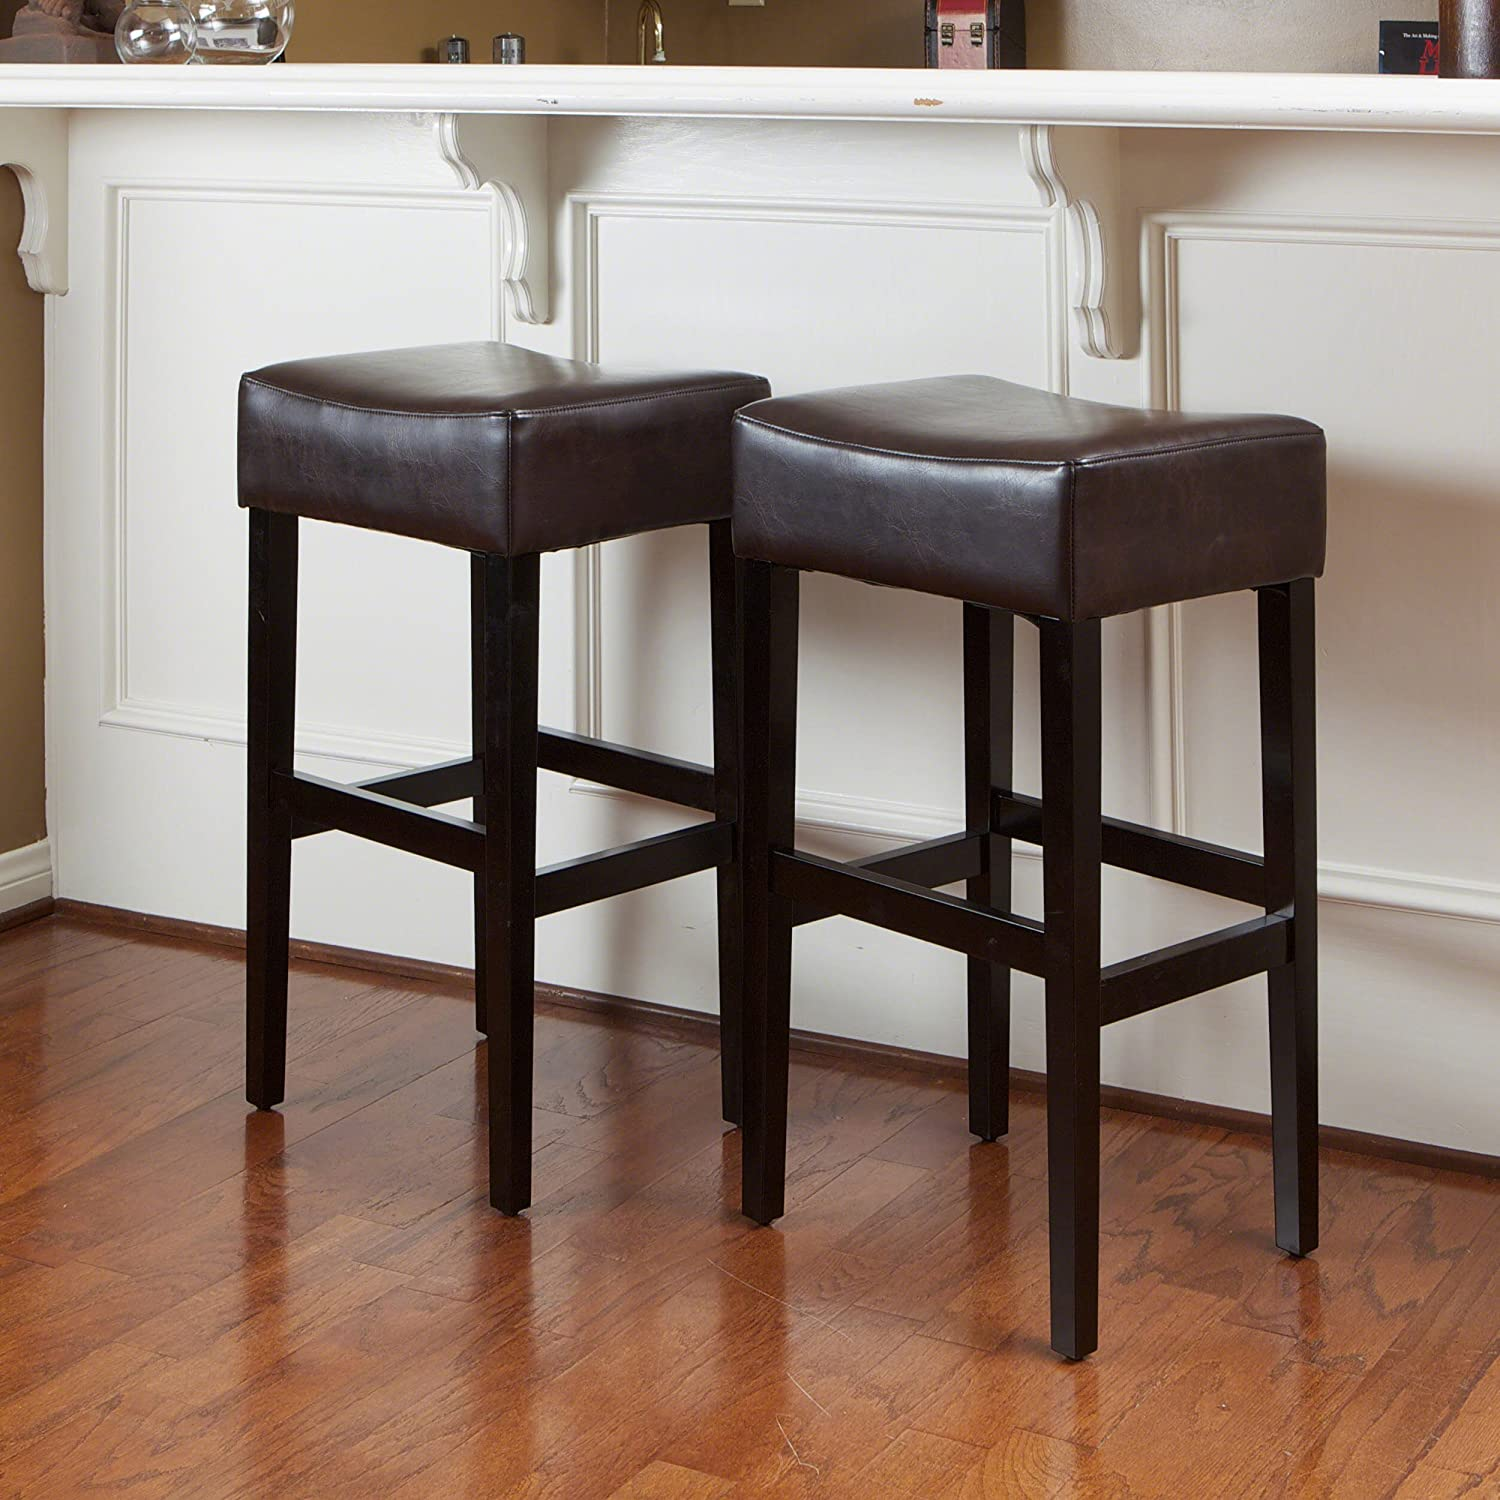 Christopher Knight Home 235134 Lopez Leather Backless Bar Stools (Set of 2), Brown